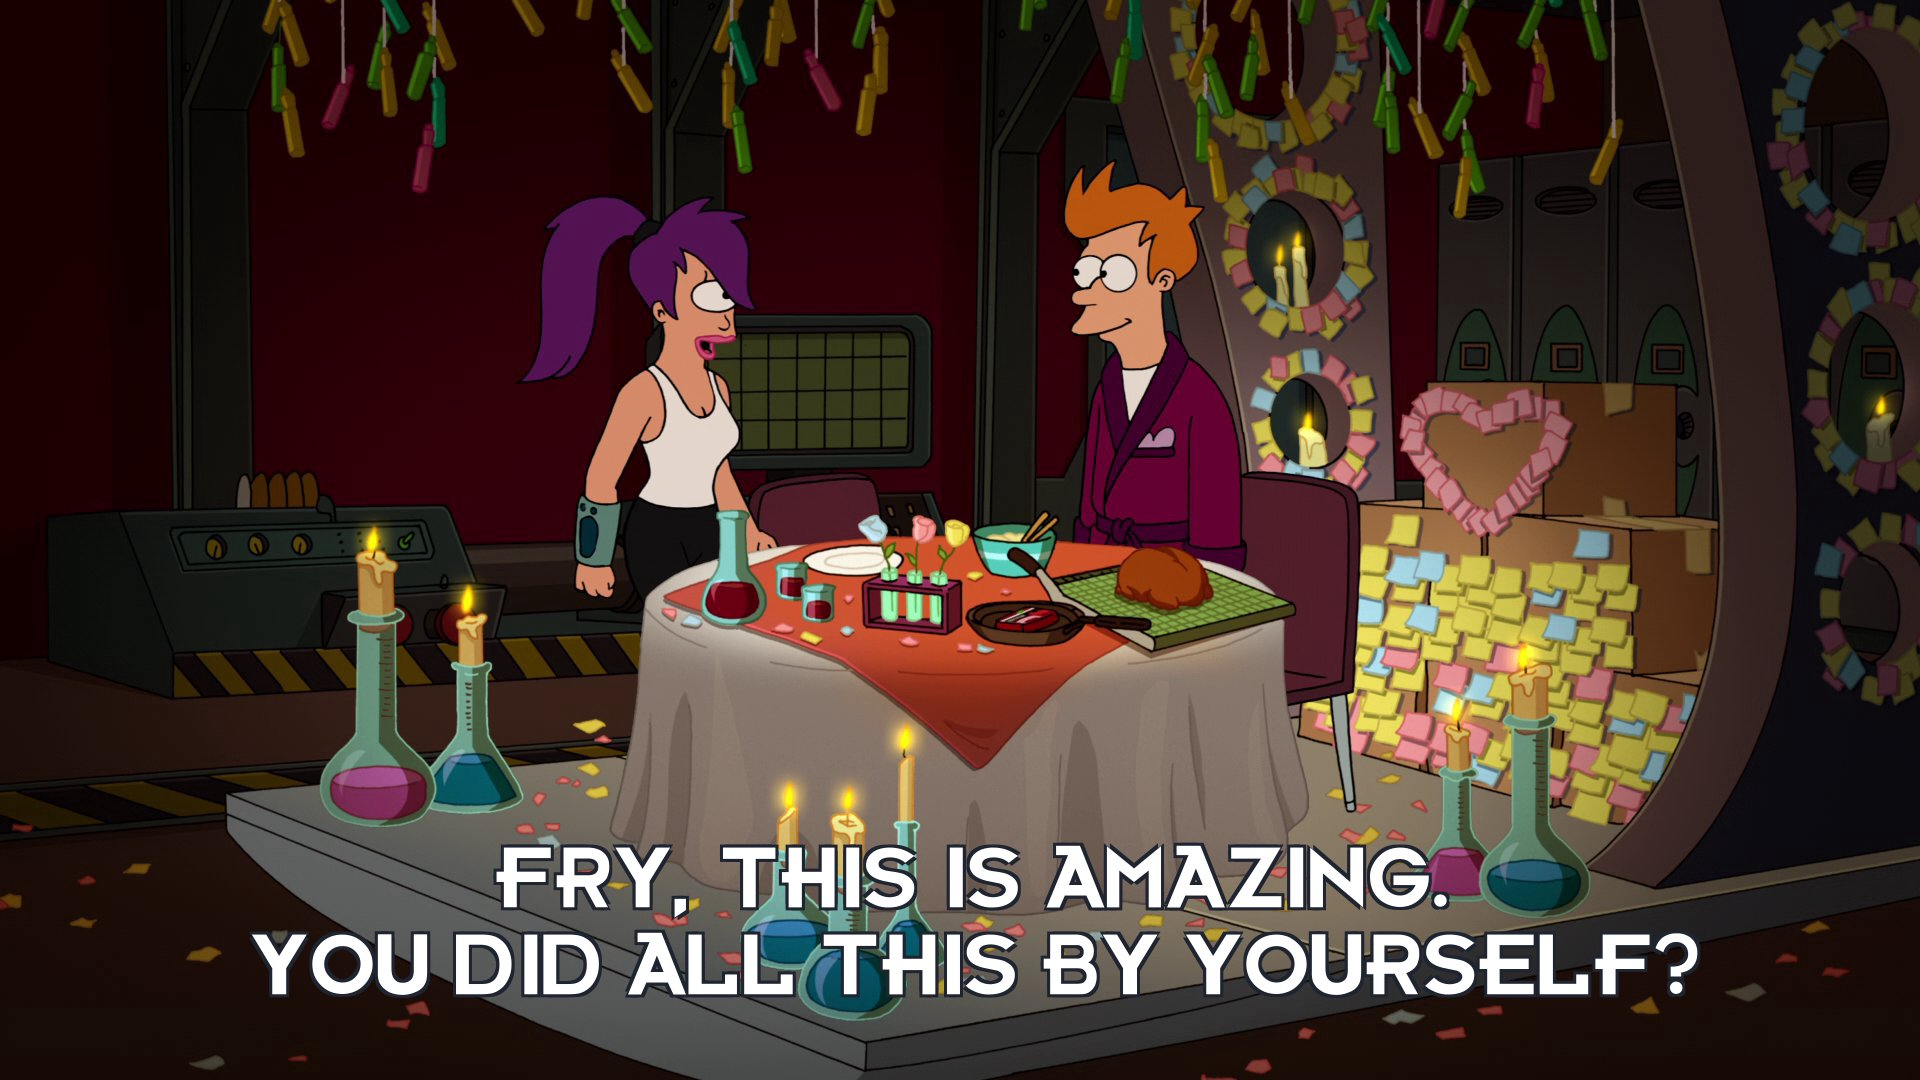 Turanga Leela: Fry, this is amazing. You did all this by yourself?